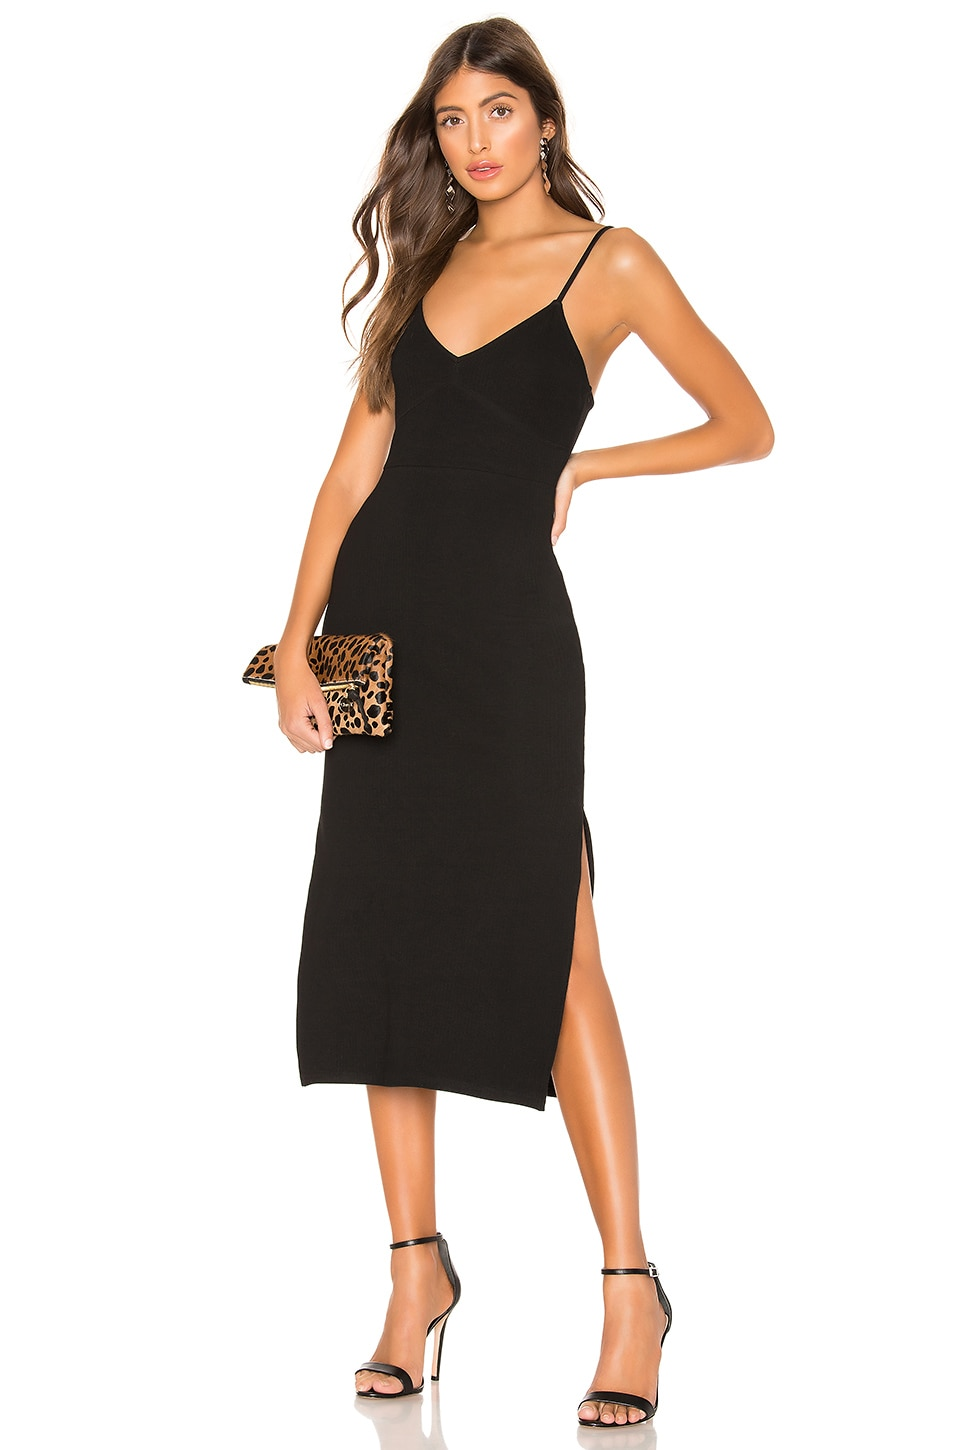 Privacy Please Bette Midi Dress in Black